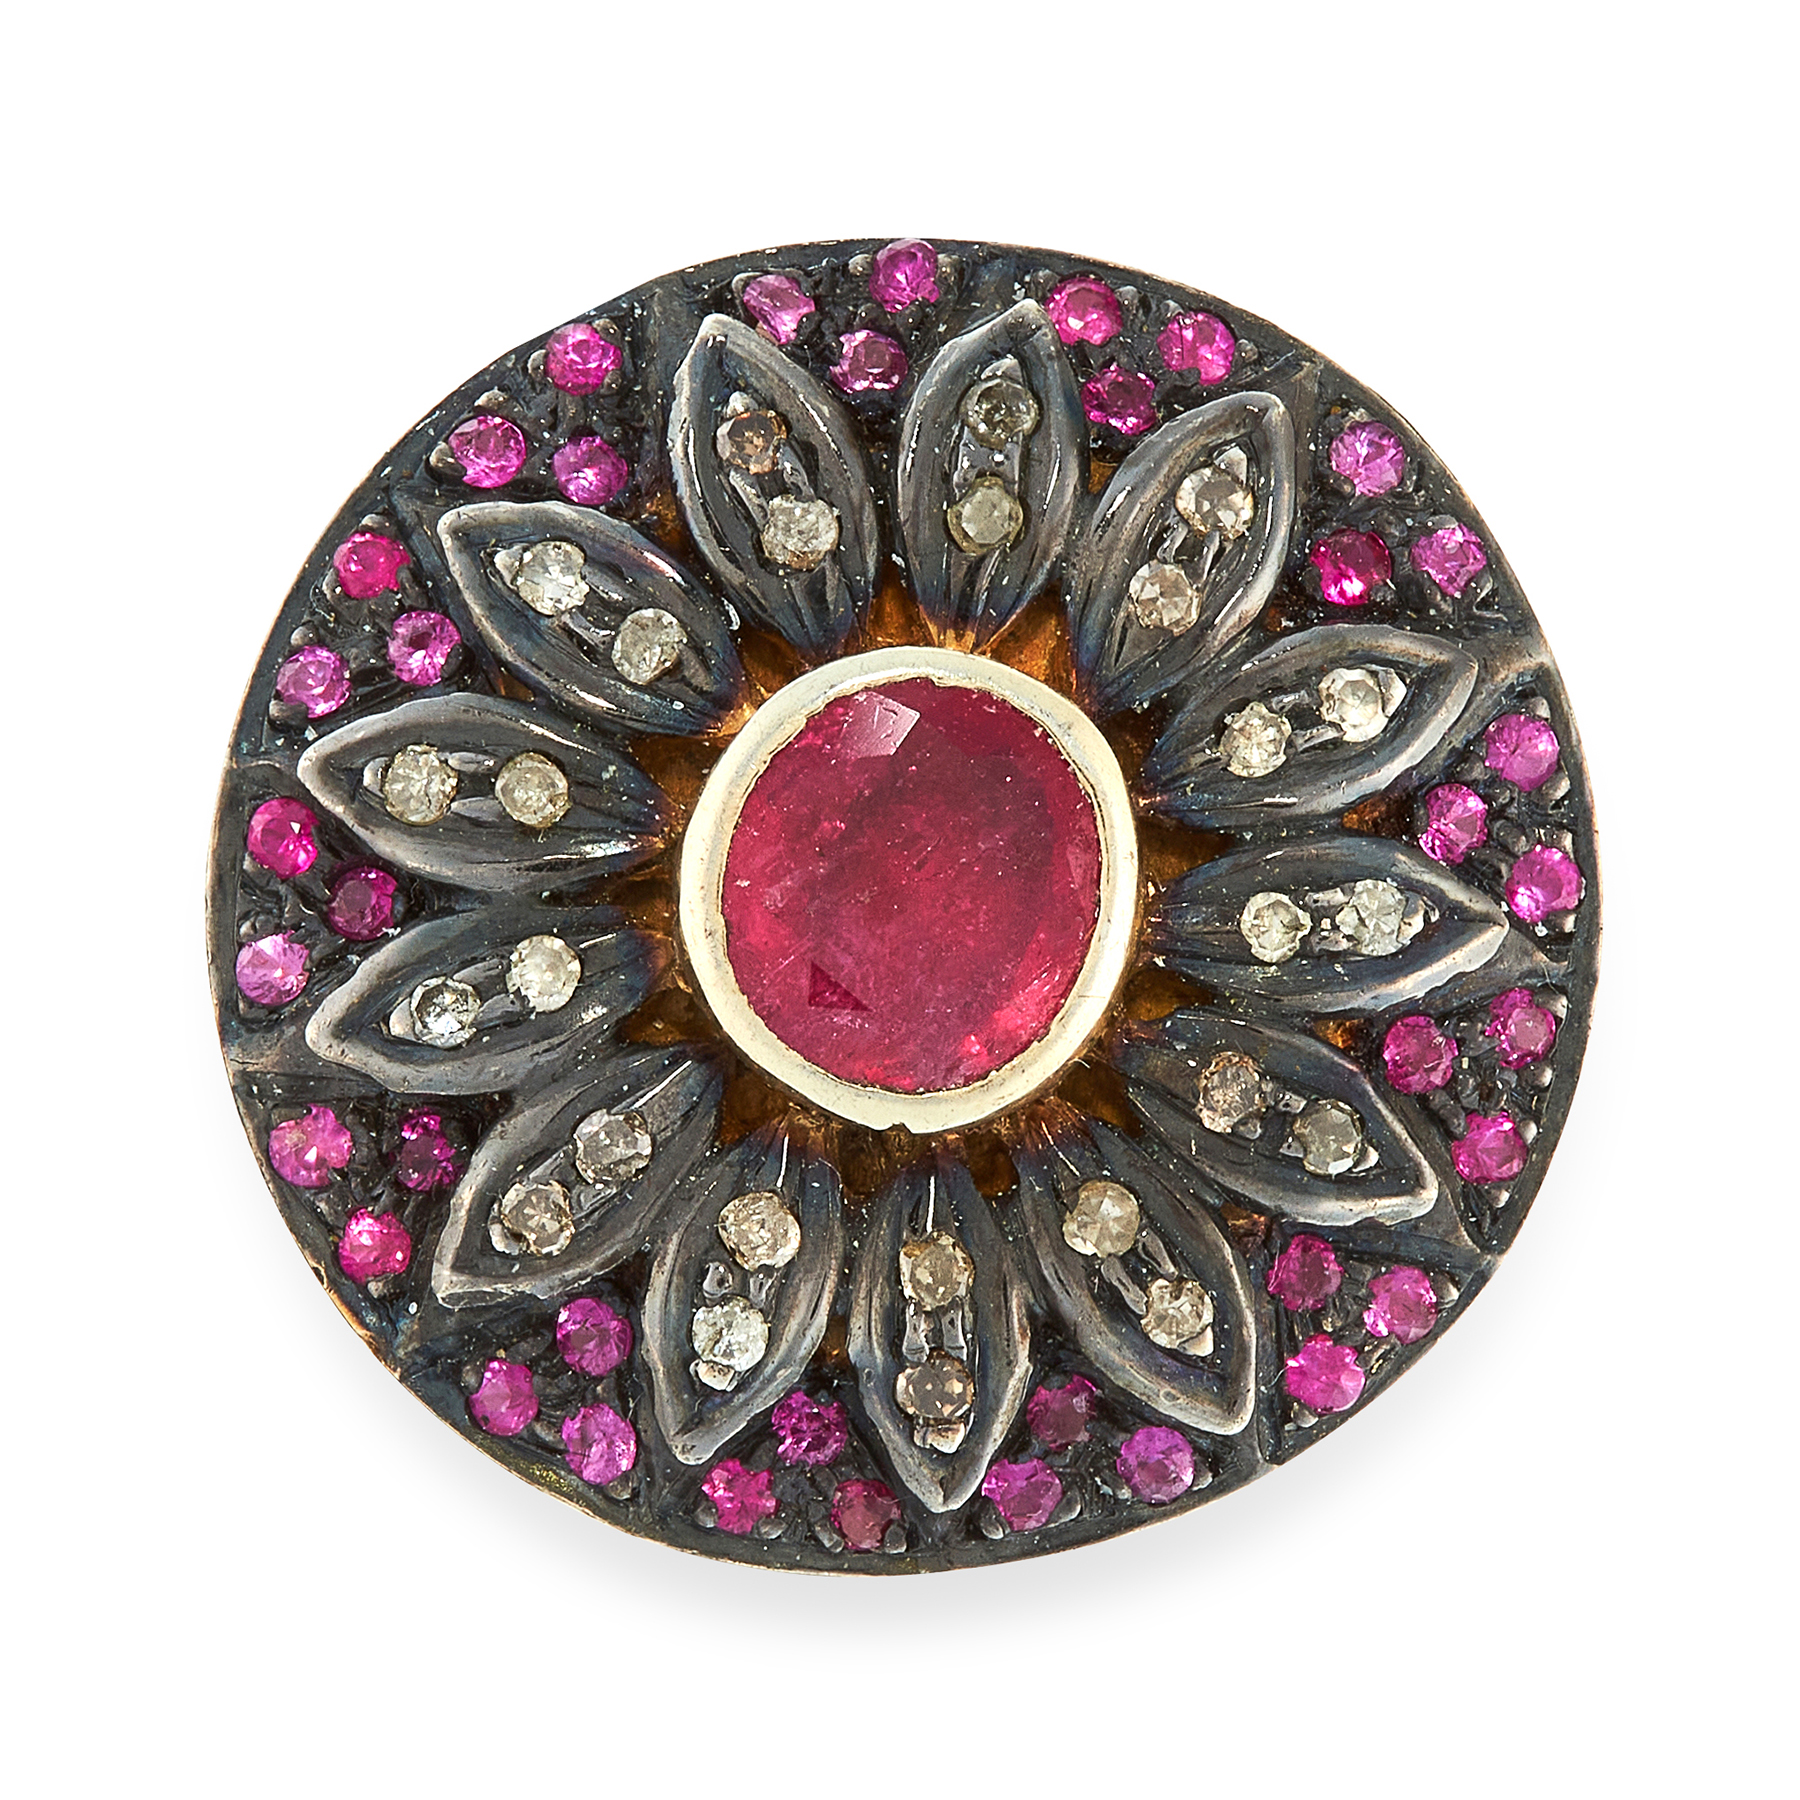 A RUBY AND DIAMOND JEWEL the circular body designed as a flower, set with rubies and diamonds,